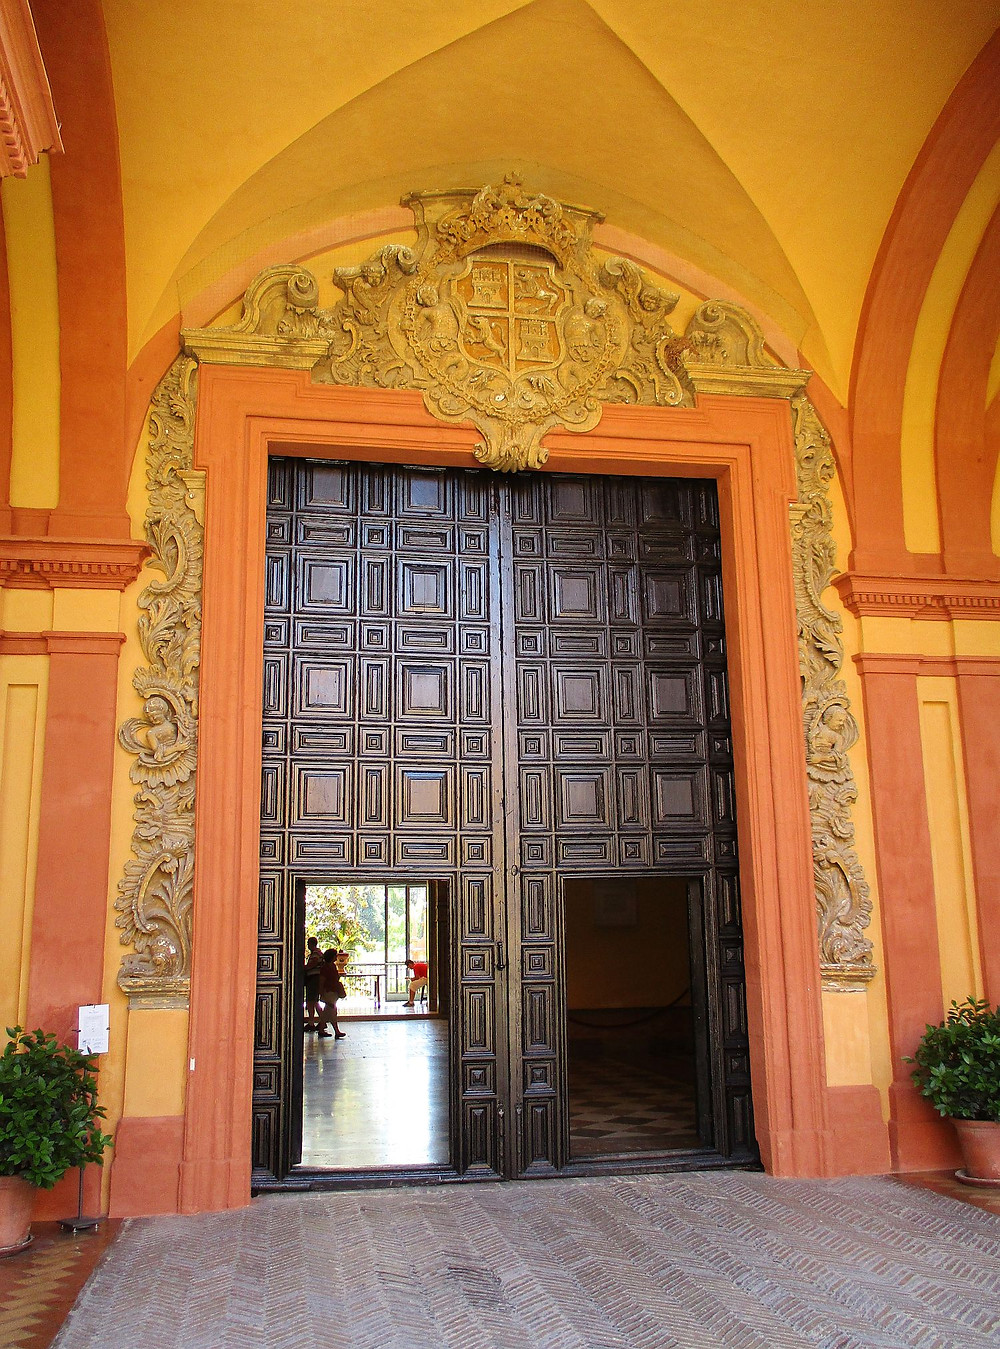 a baroque door in the Alcazar that is the entrance to the Gothic Palace